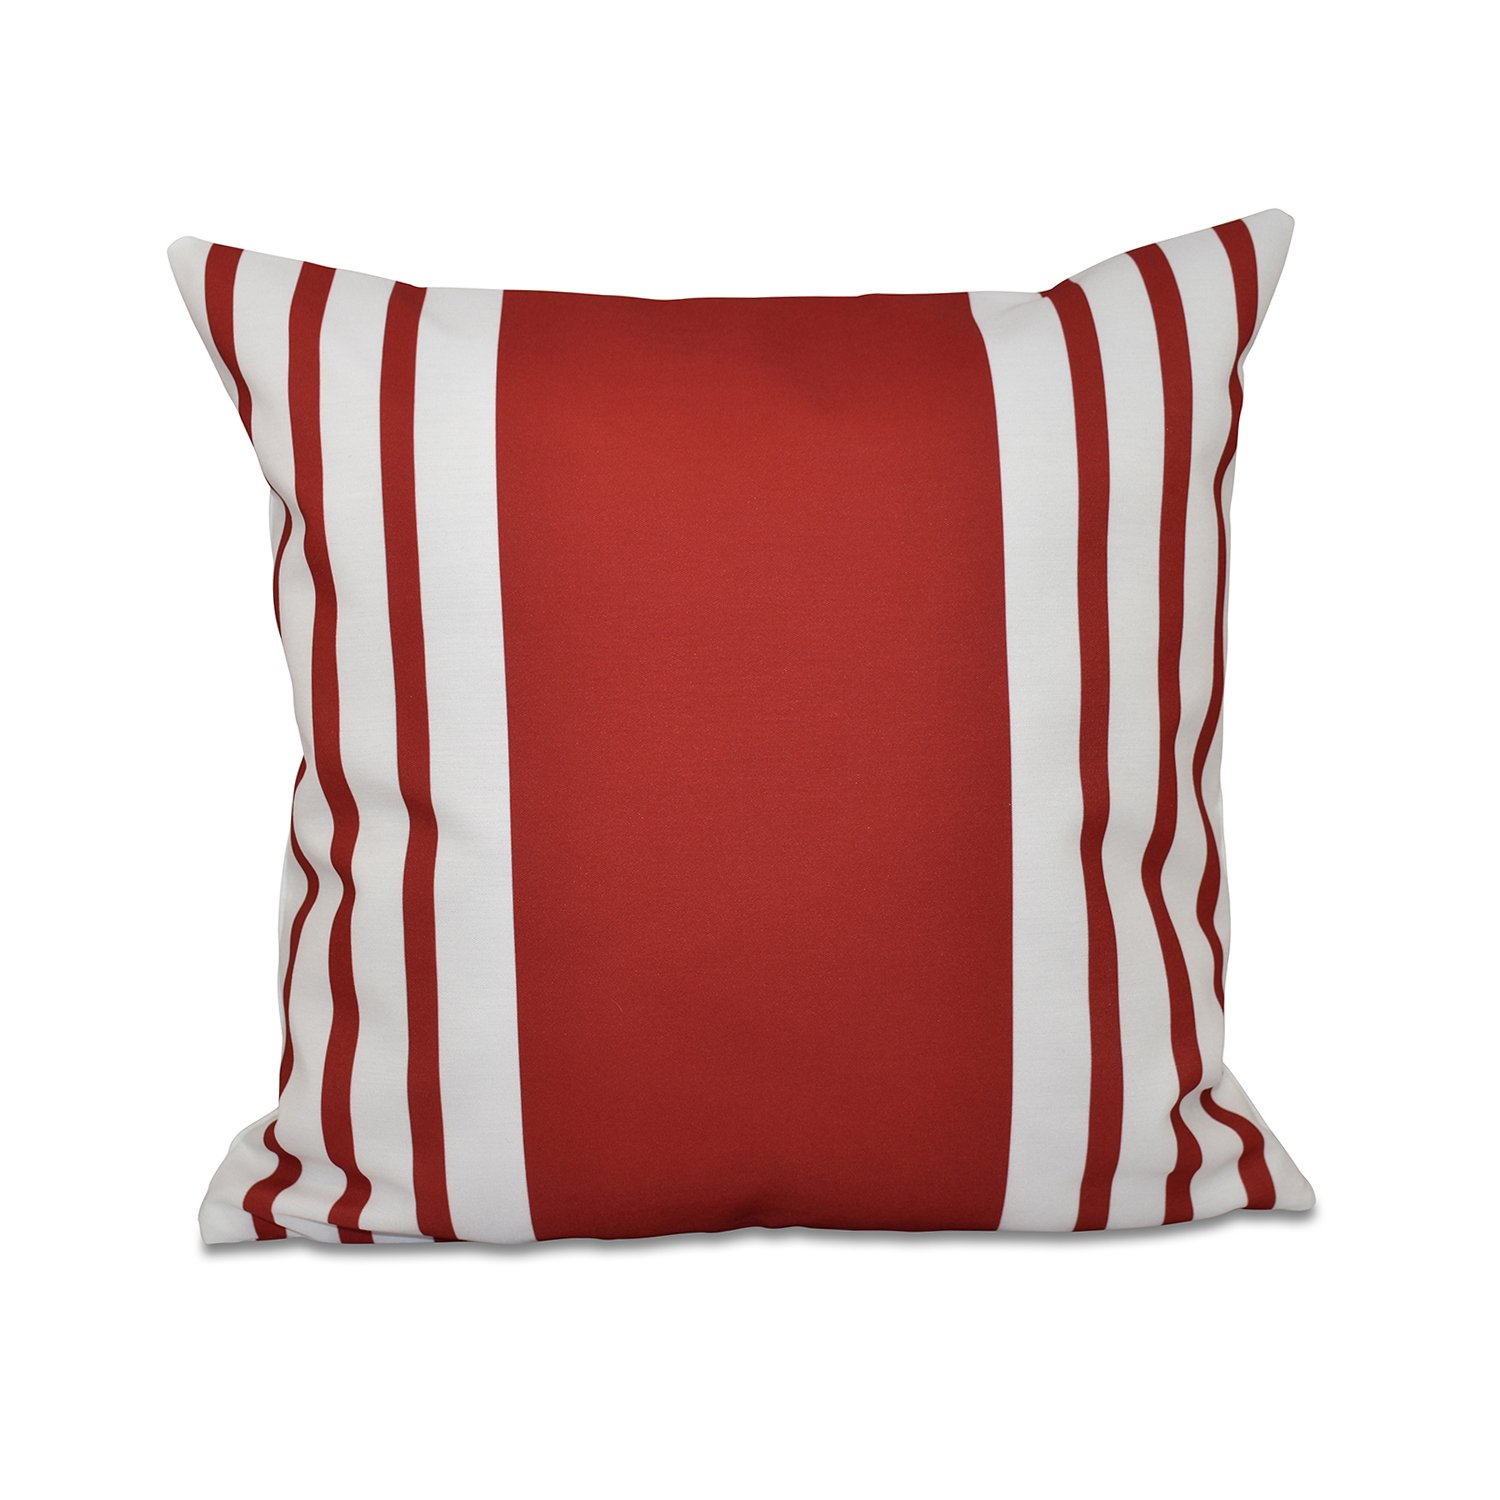 E by design Big and Bold Stripe Decorative Outdoor Pillow, 20-Inch, Red